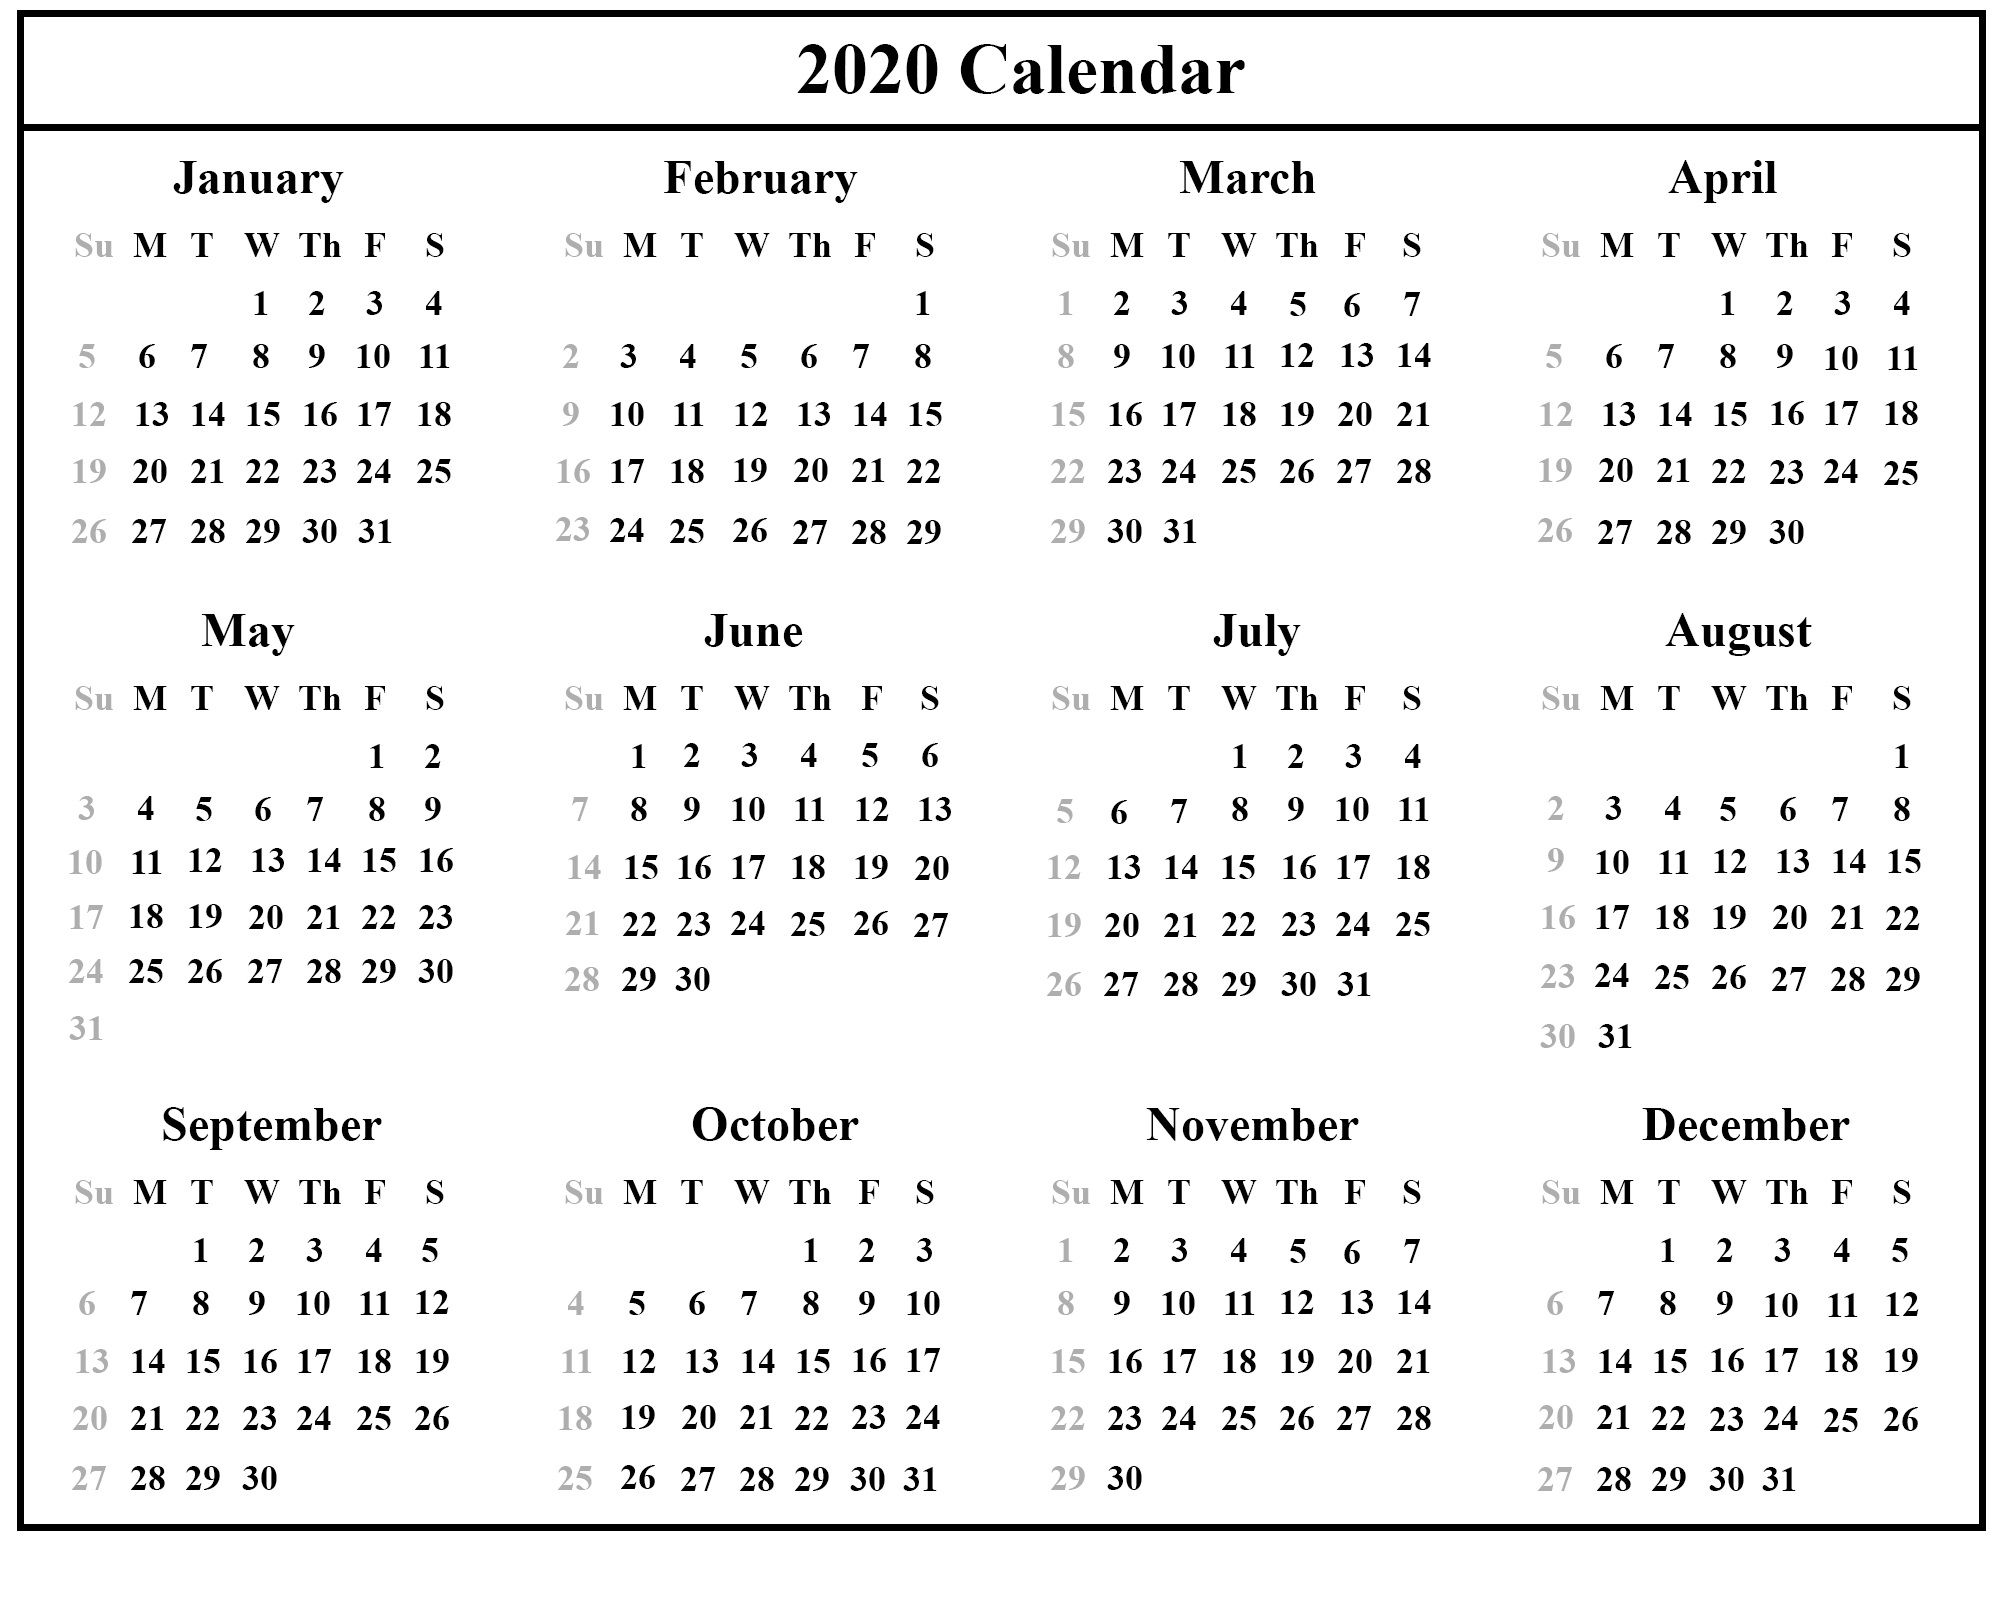 002 Stunning Calendar Template Free Download Design  2020 Powerpoint Table 2019 MalaysiaFull